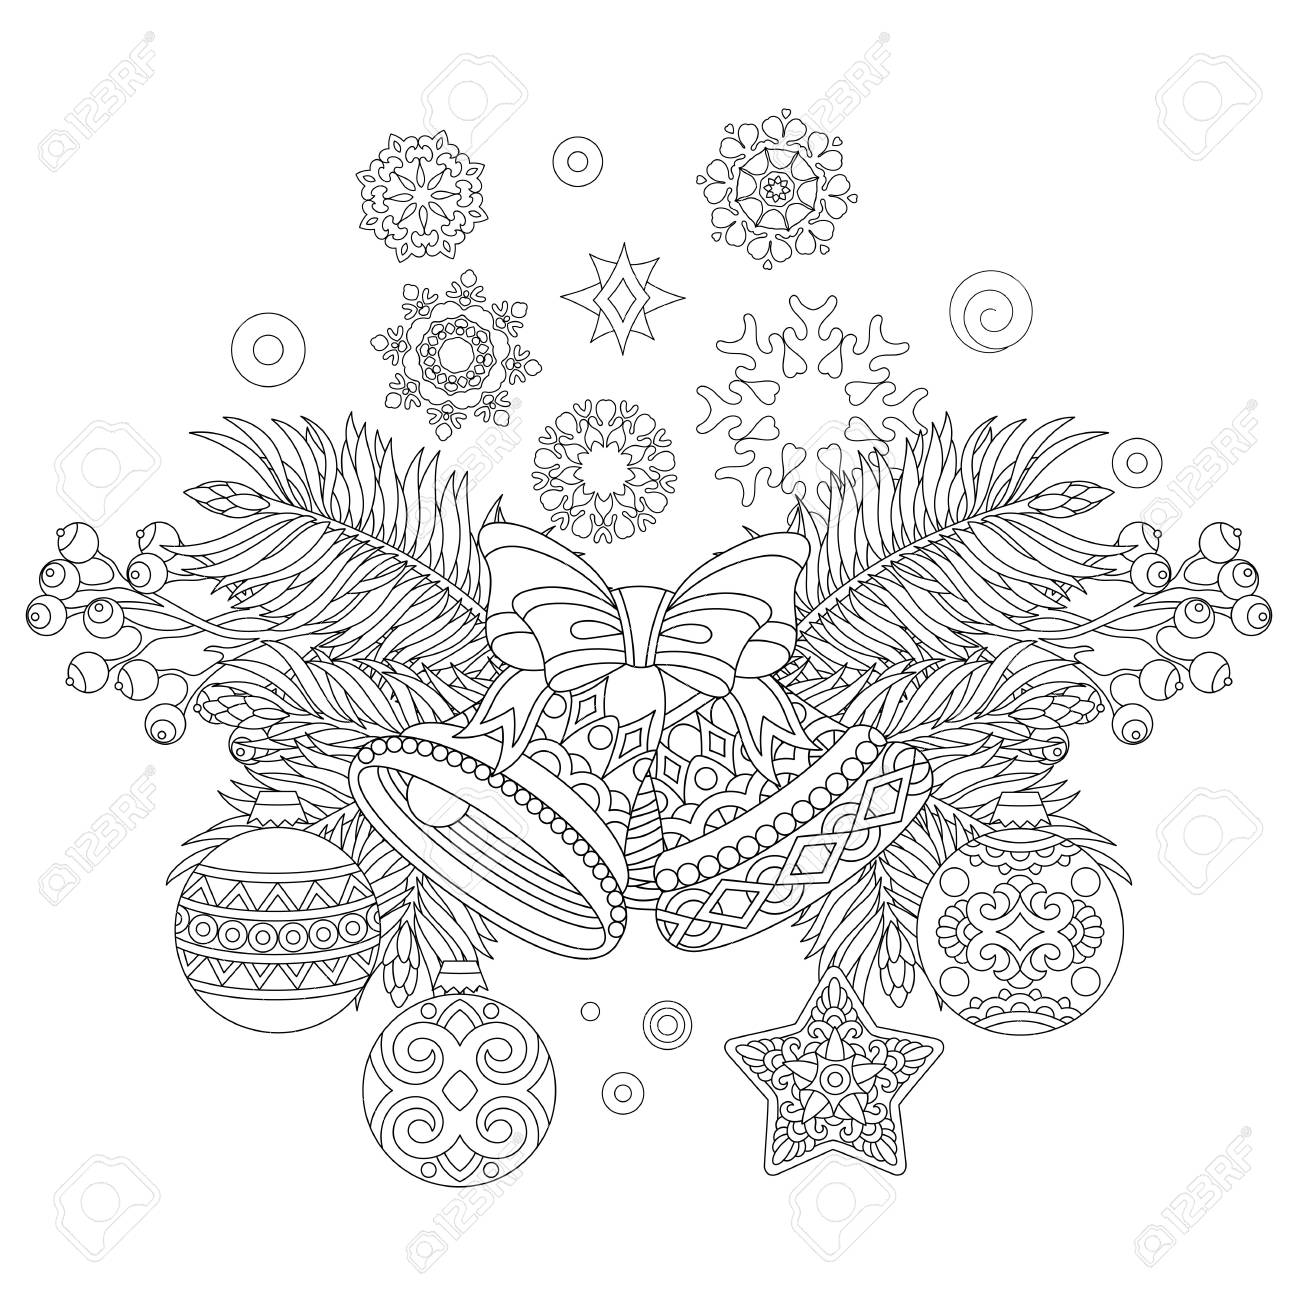 Coloring Page With Christmas Decorations Fir Tree Jingle Bells Balls Vintage